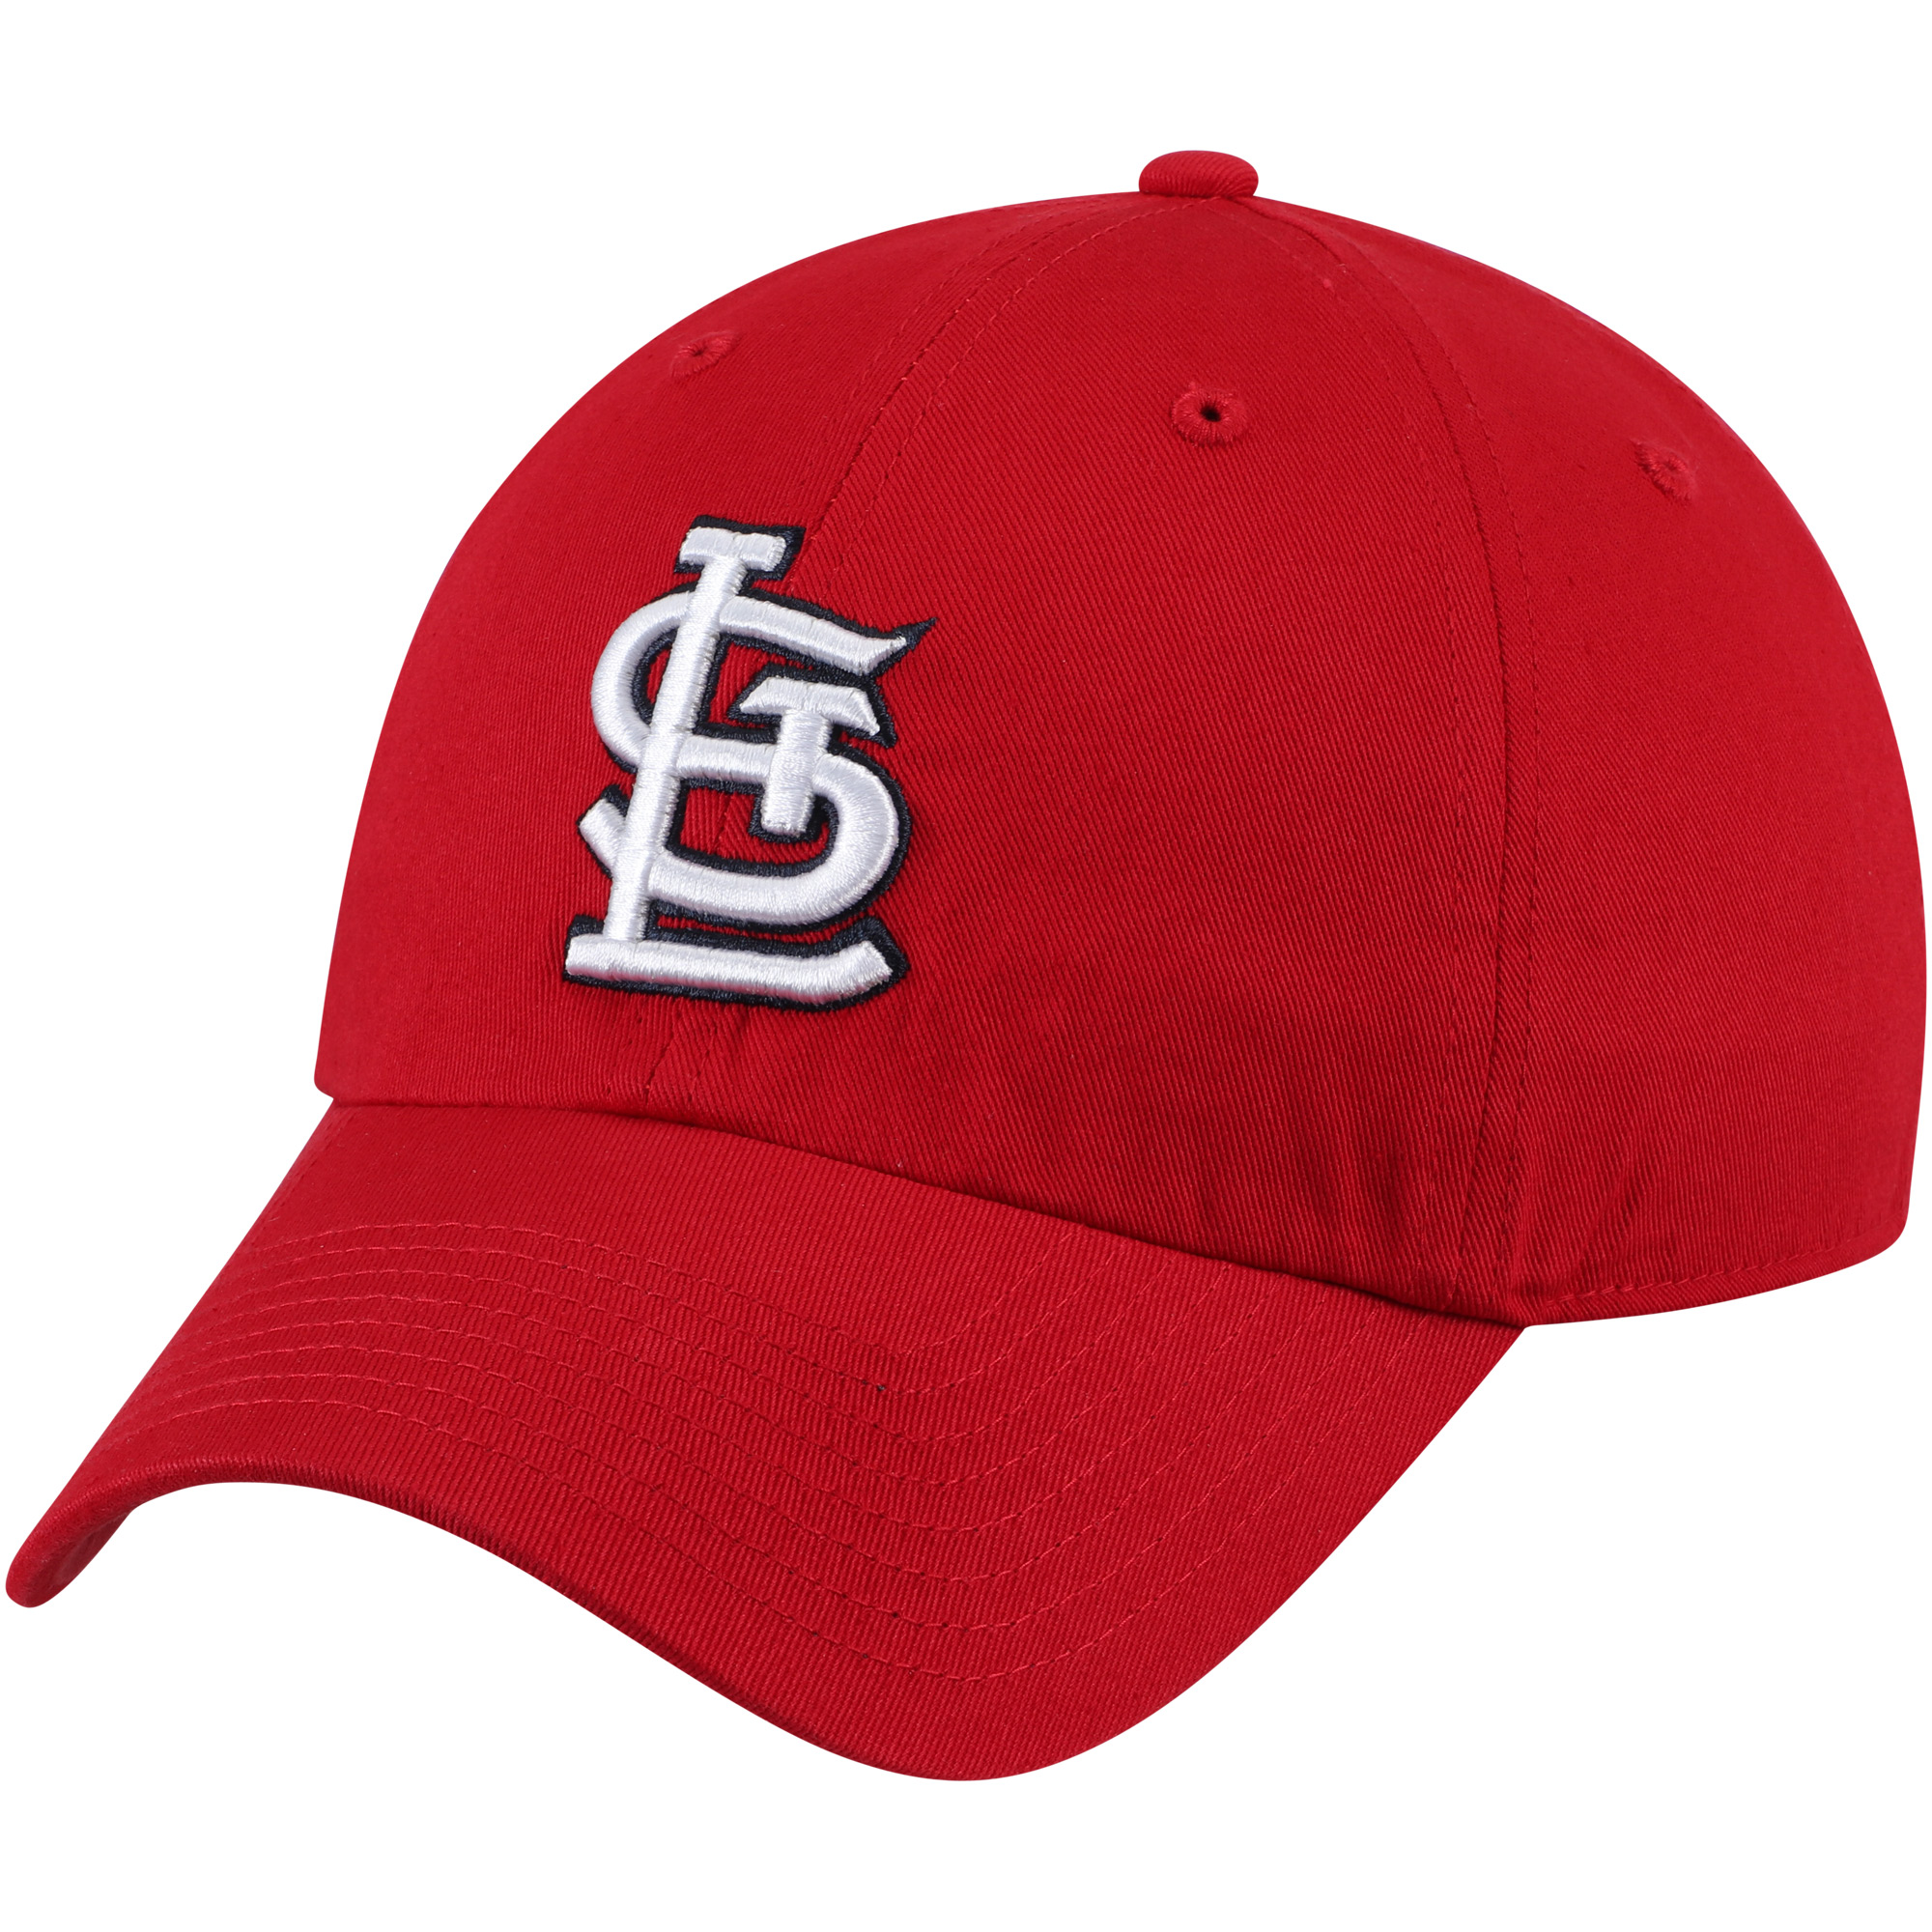 St. Louis Cardinals '47 Primary Logo Clean Up Adjustable Hat - Red - OSFA